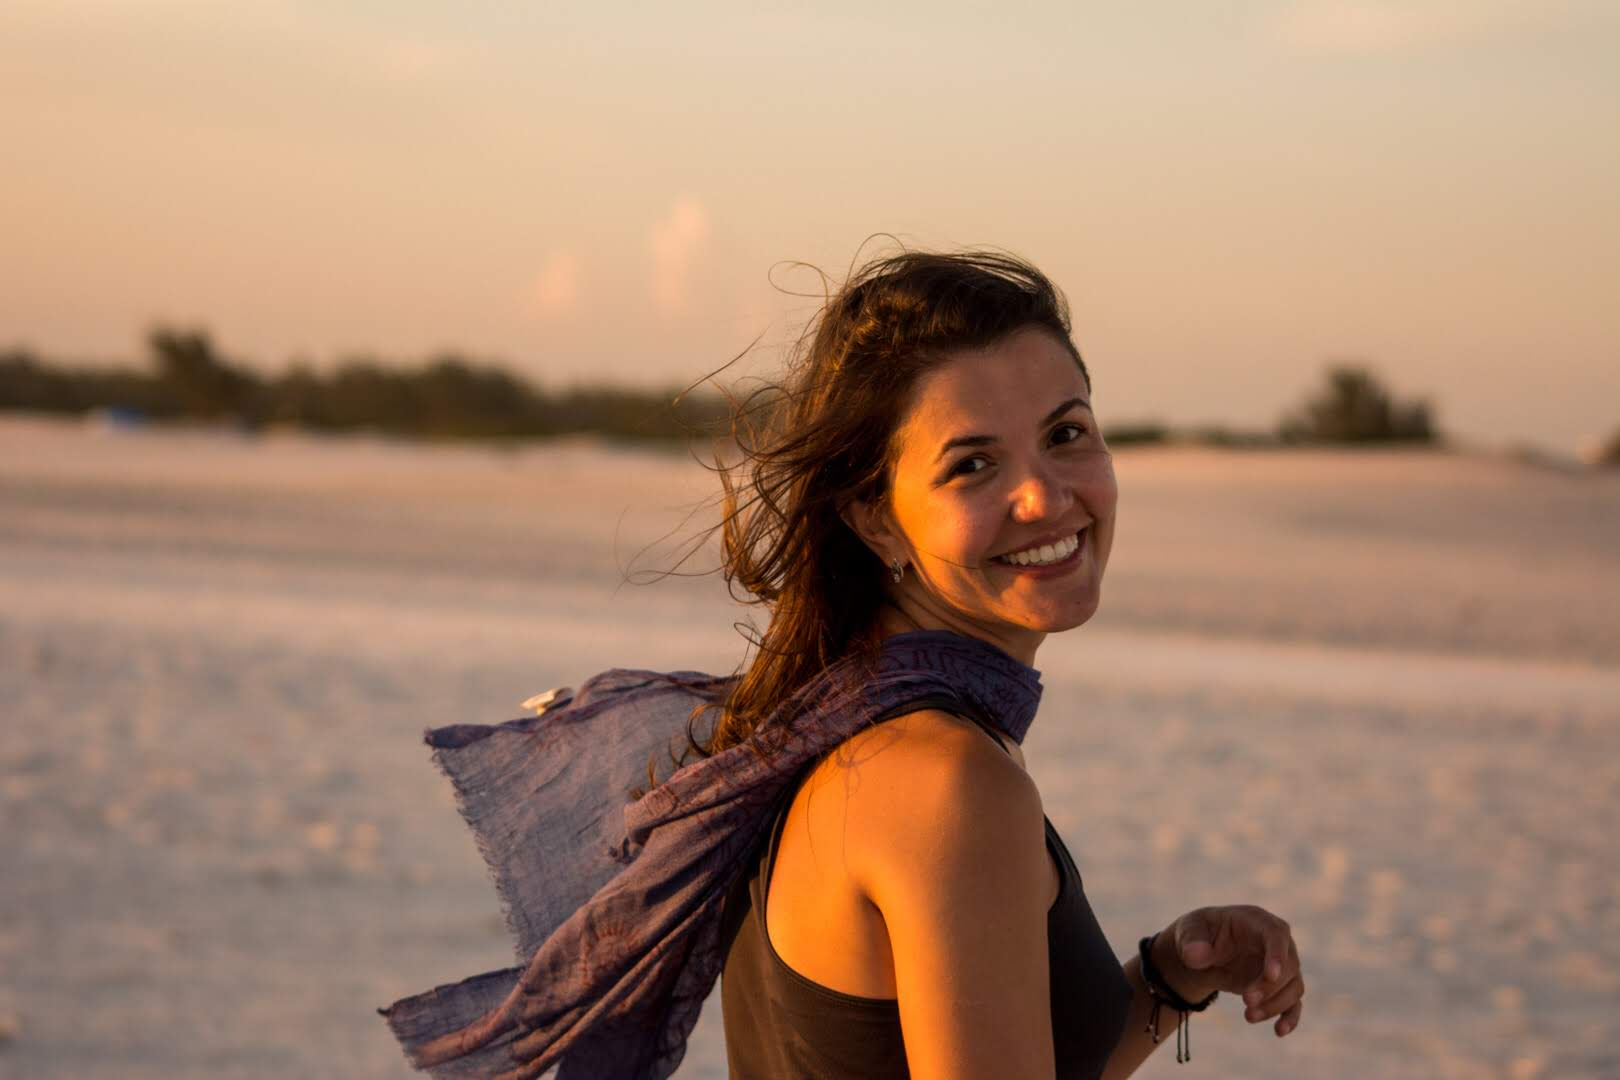 wonderful sunset portrait photo shooting. Beautiful girl at the beach smiling with the wind in her hair